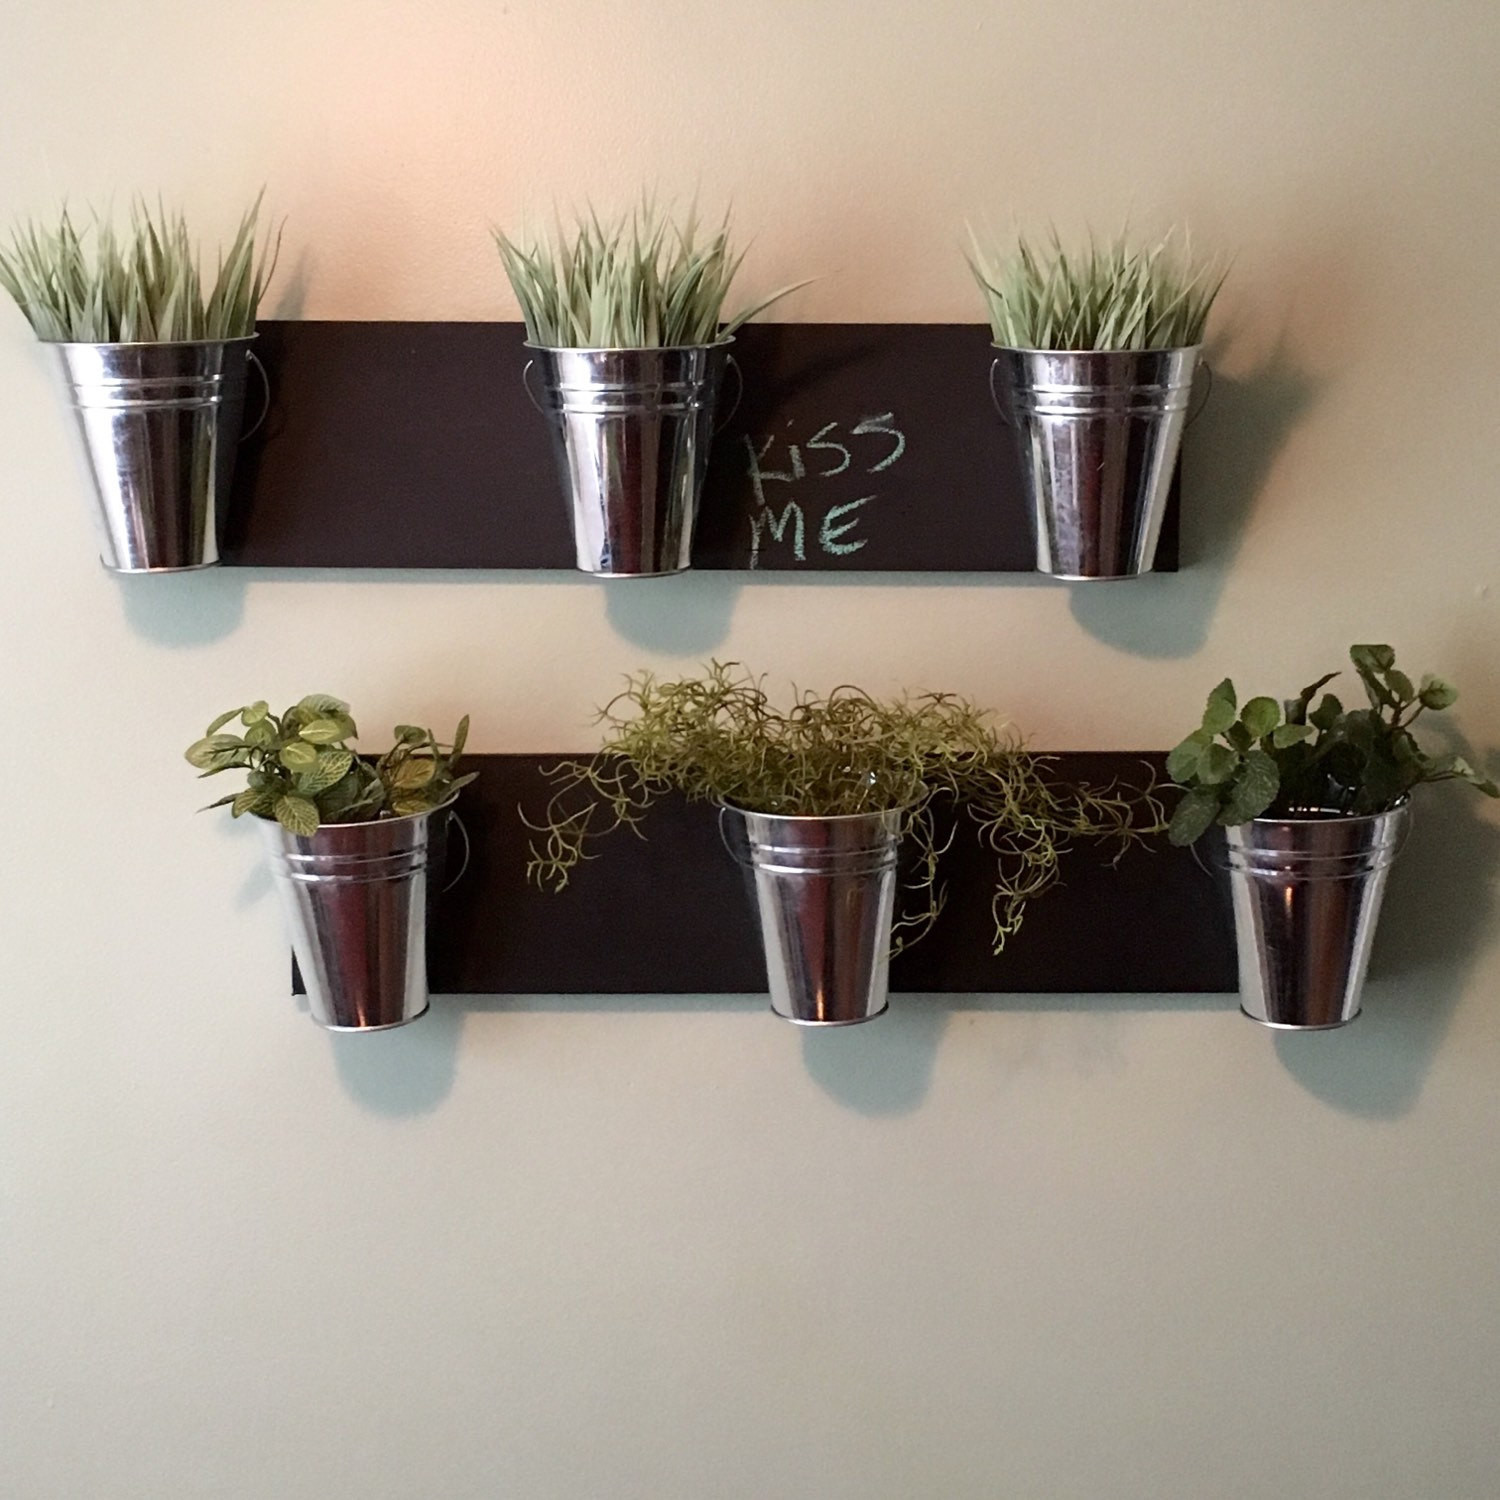 Best ideas about Wall Planters Indoor . Save or Pin Indoor Wall Planter horizontal mount Now.